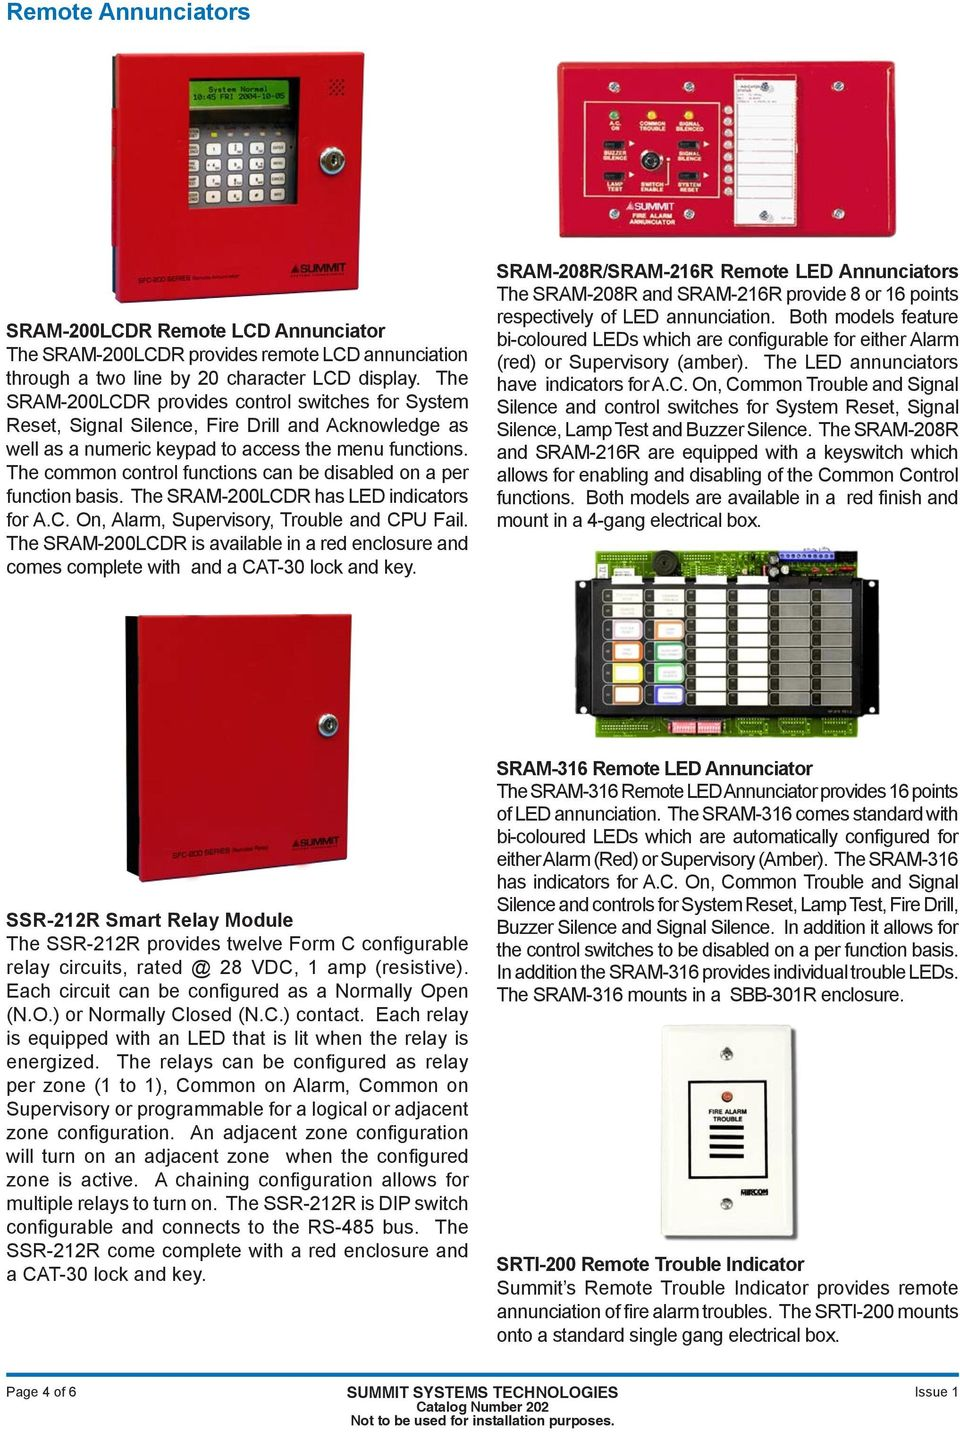 Sfc 200 Series Fire Alarm Control Panels Dsc Pc1832 Wiring Diagram The Common Functions Can Be Disabled On A Per Function Basis Sram